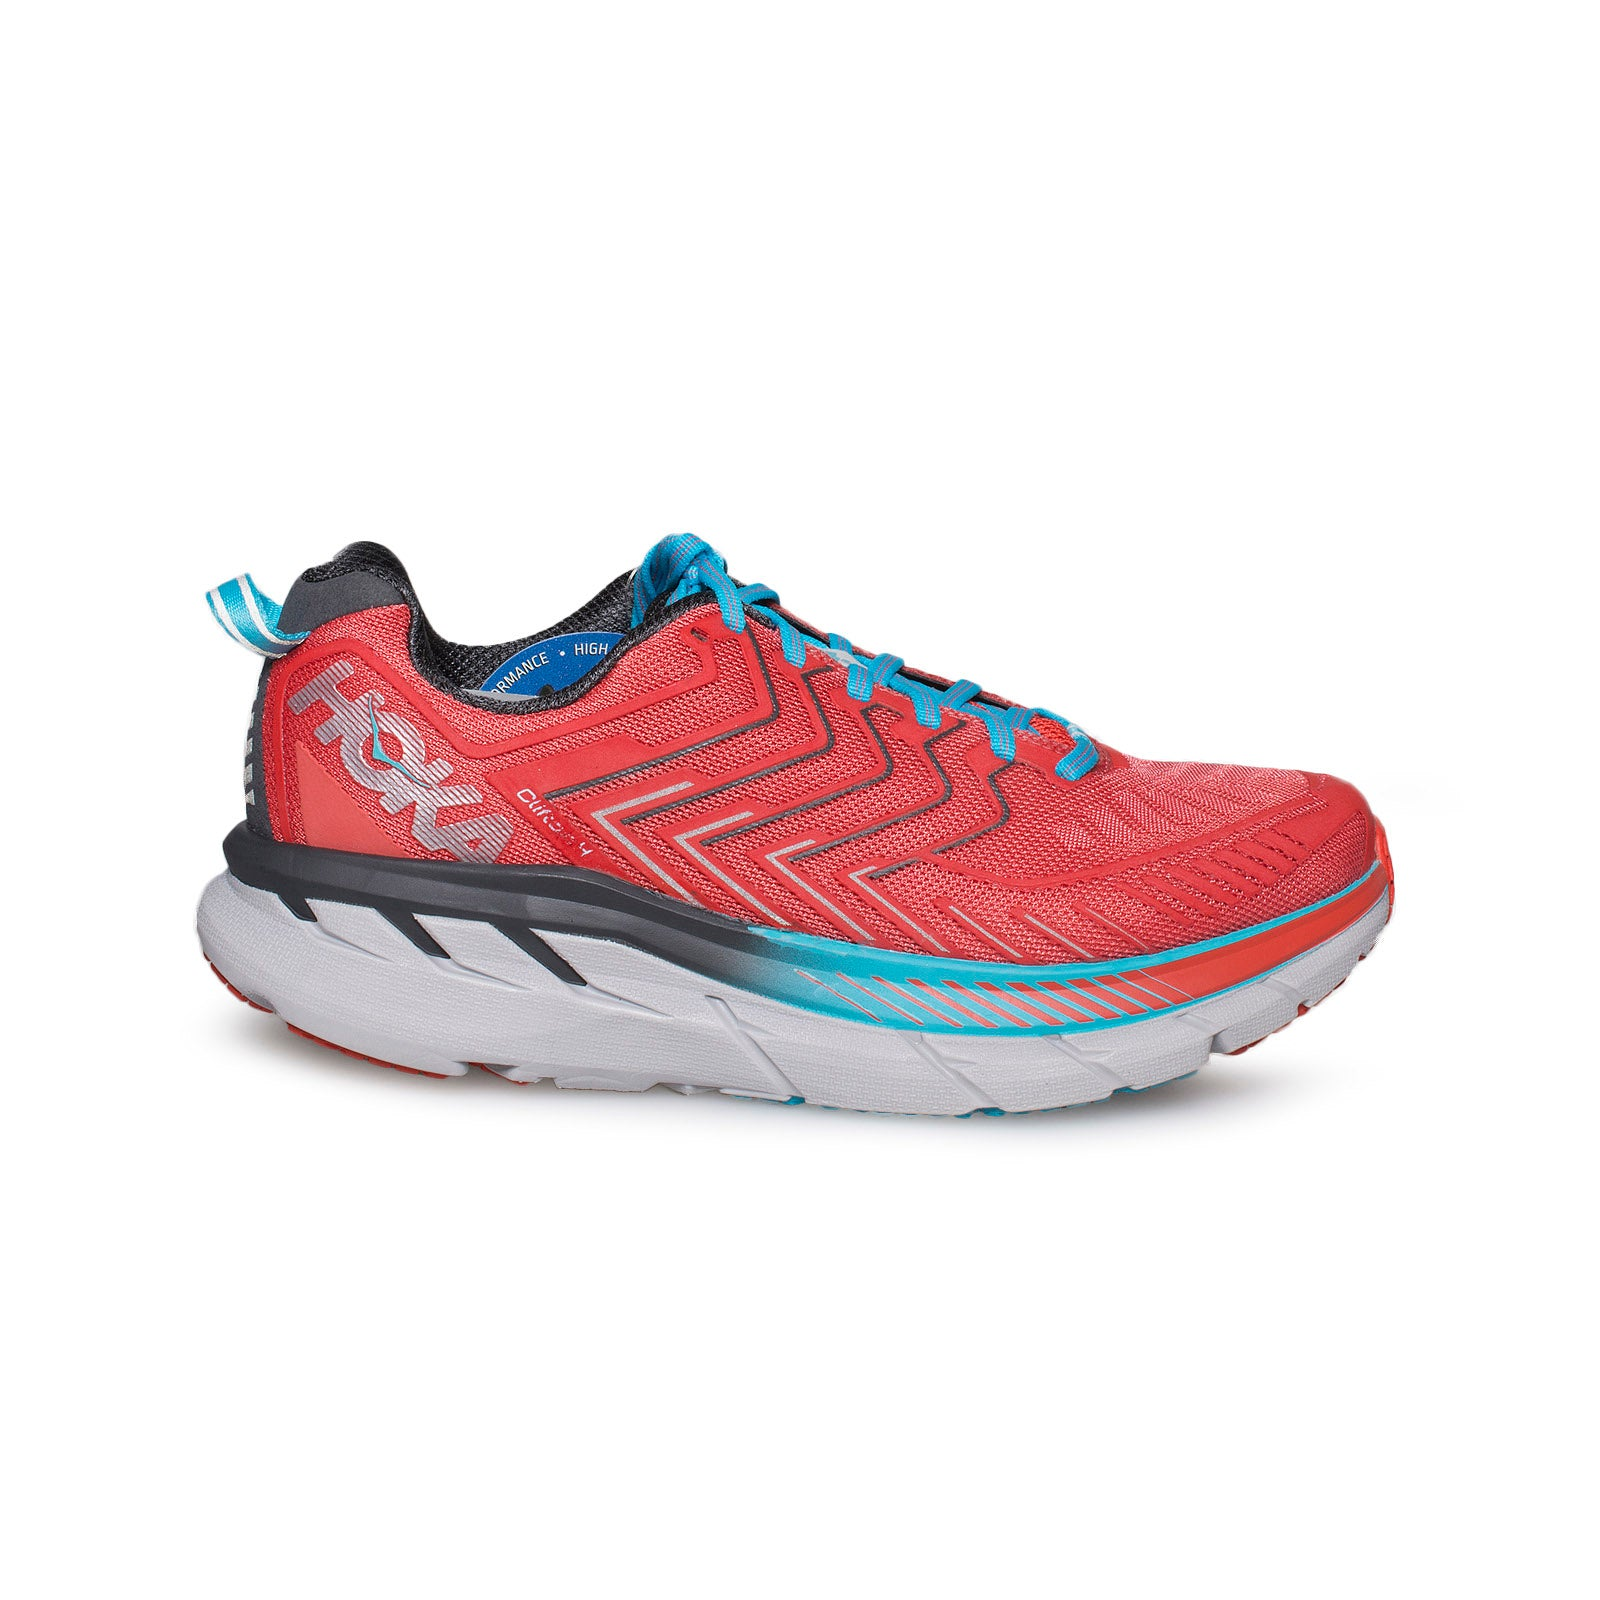 new style 56ac5 aee55 Hoka Clifton 4 Dubarry Grenadine Running Shoes - Women's